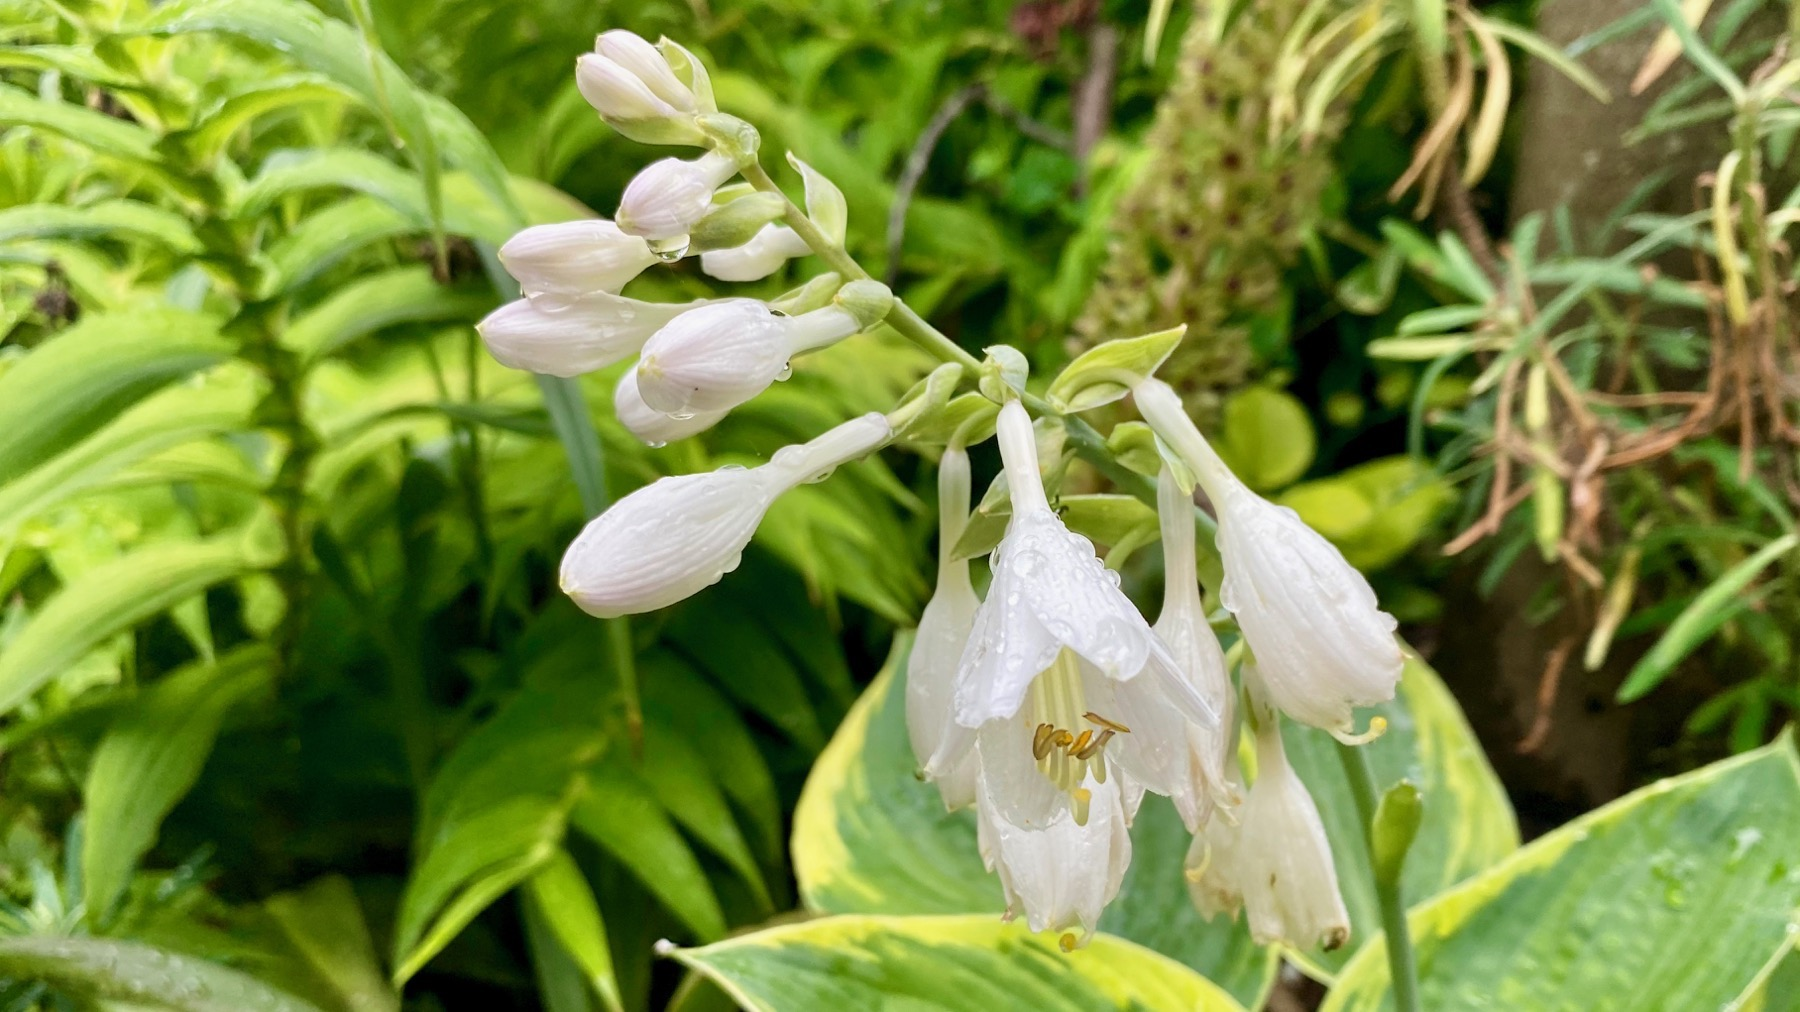 Hosta drippy